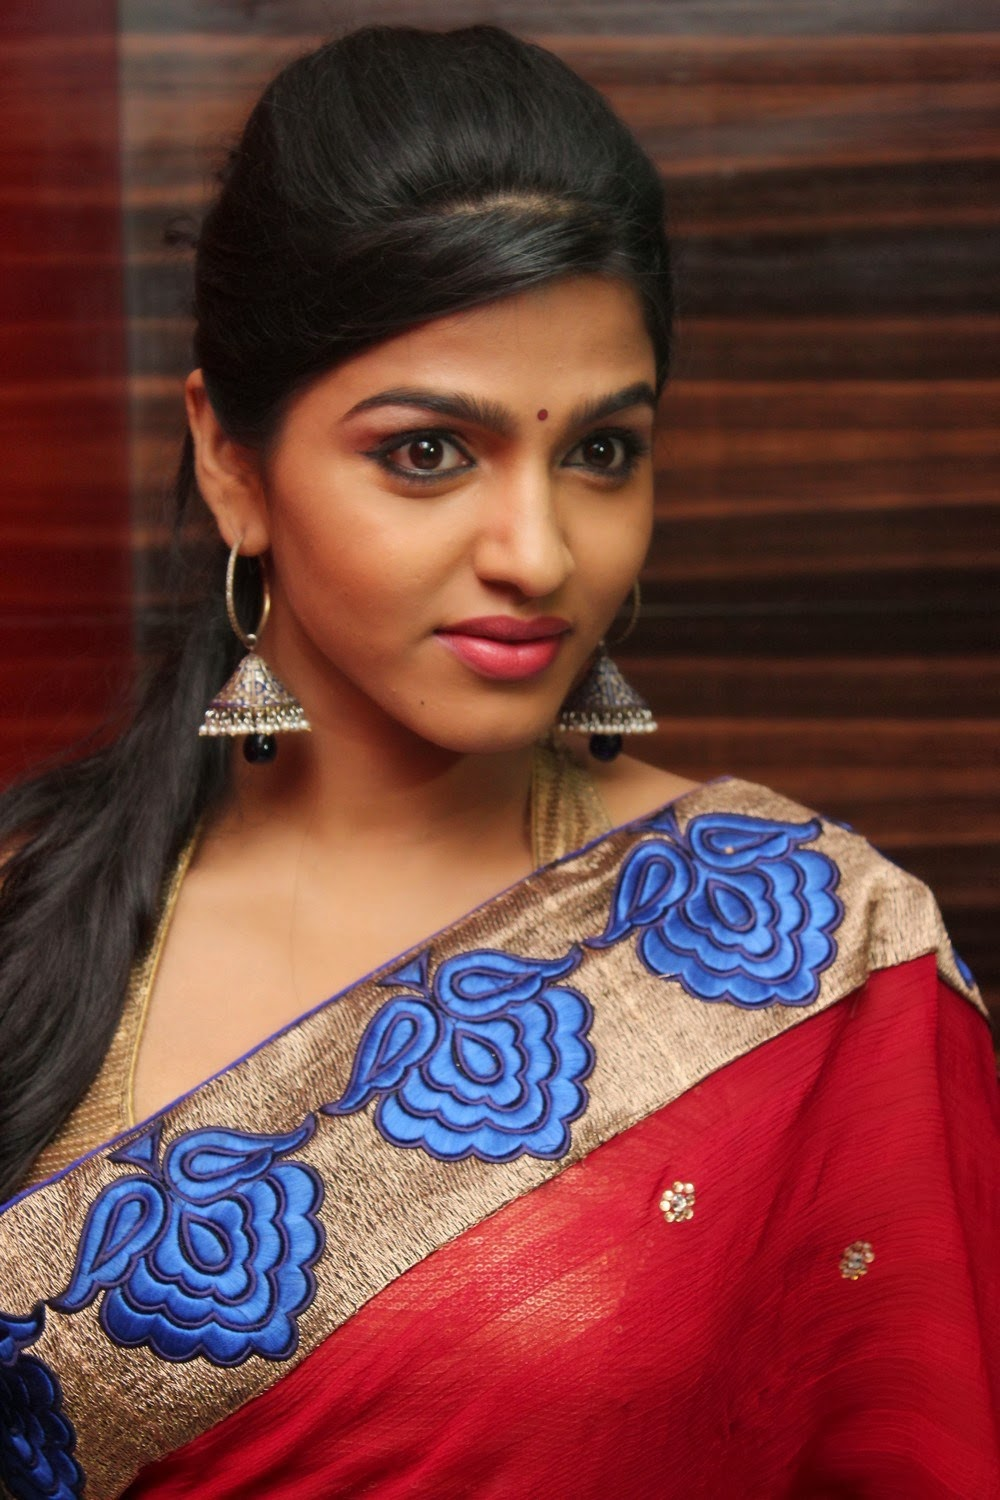 actress dhansika red saree photos gollery by indian girls whatsapp numbers